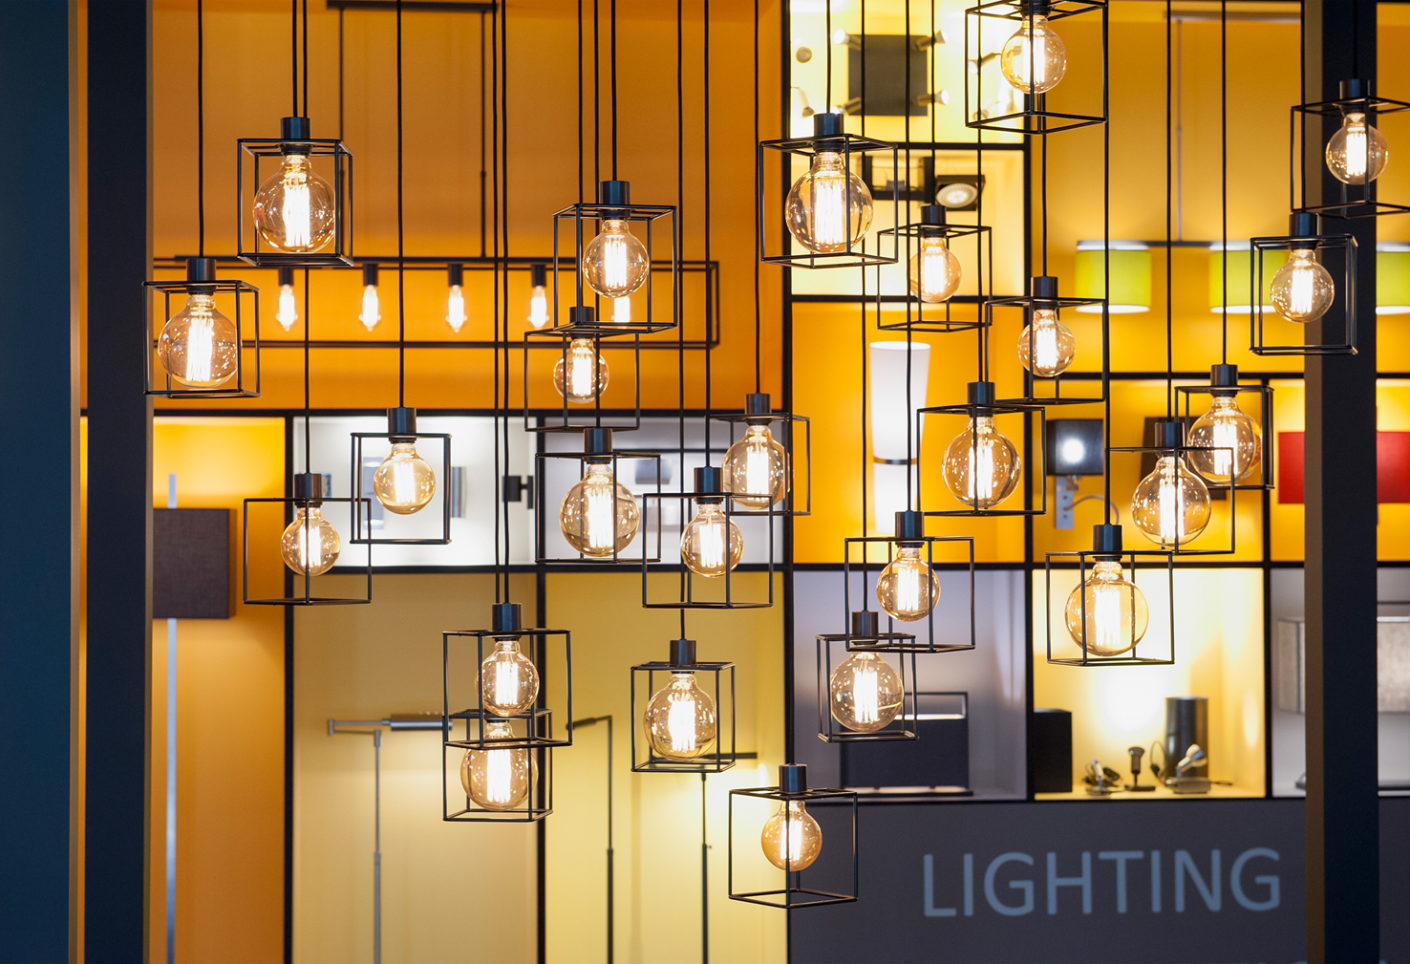 The world's firsts for lighting, electrical engineering and house and building automation will be presented at Light + Building from 18 to 23 March 2018 in Frankfurt am Main.